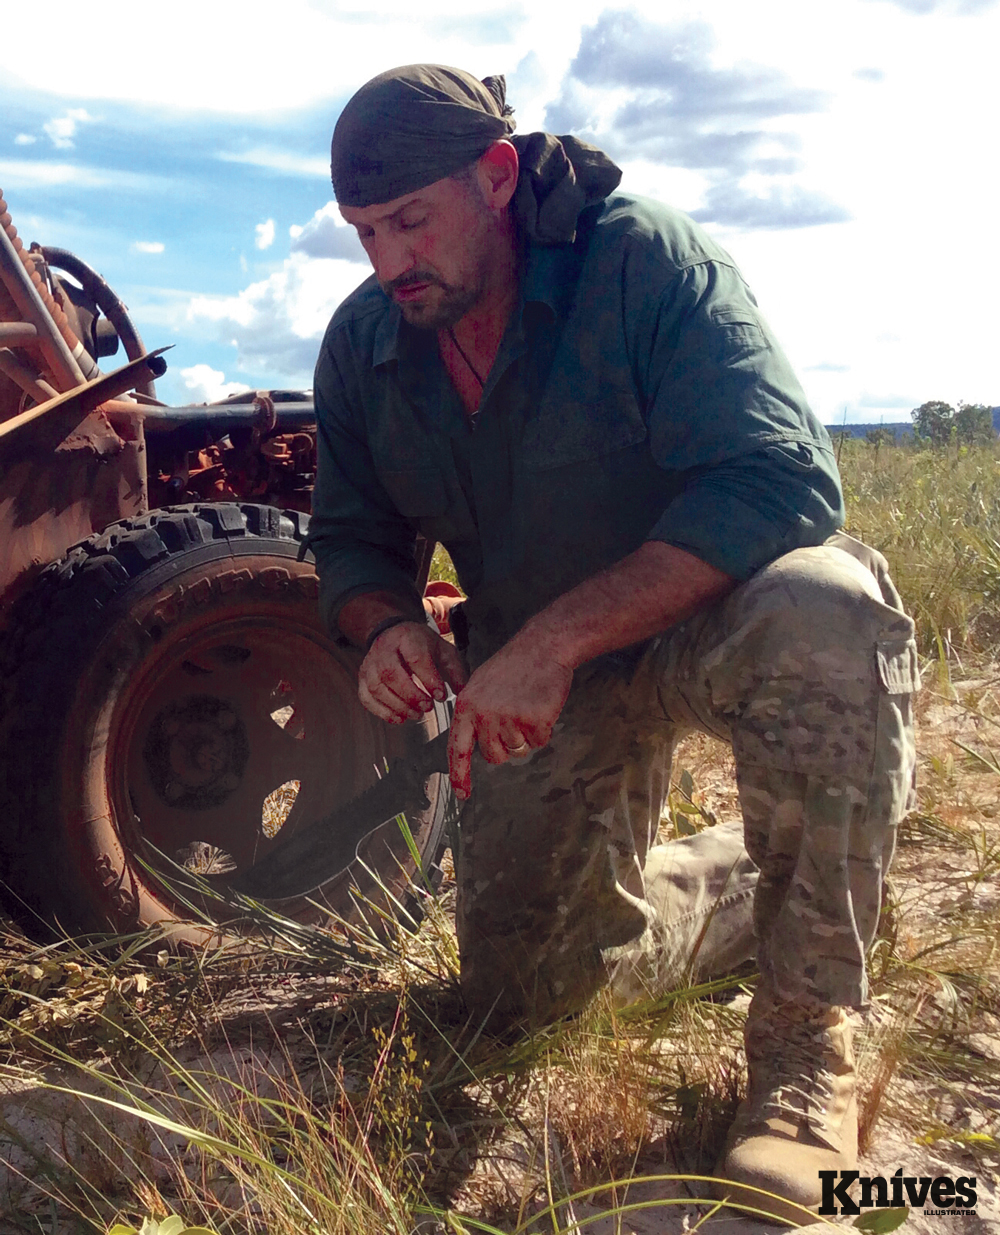 Author and Survivalist EJ SNYDER